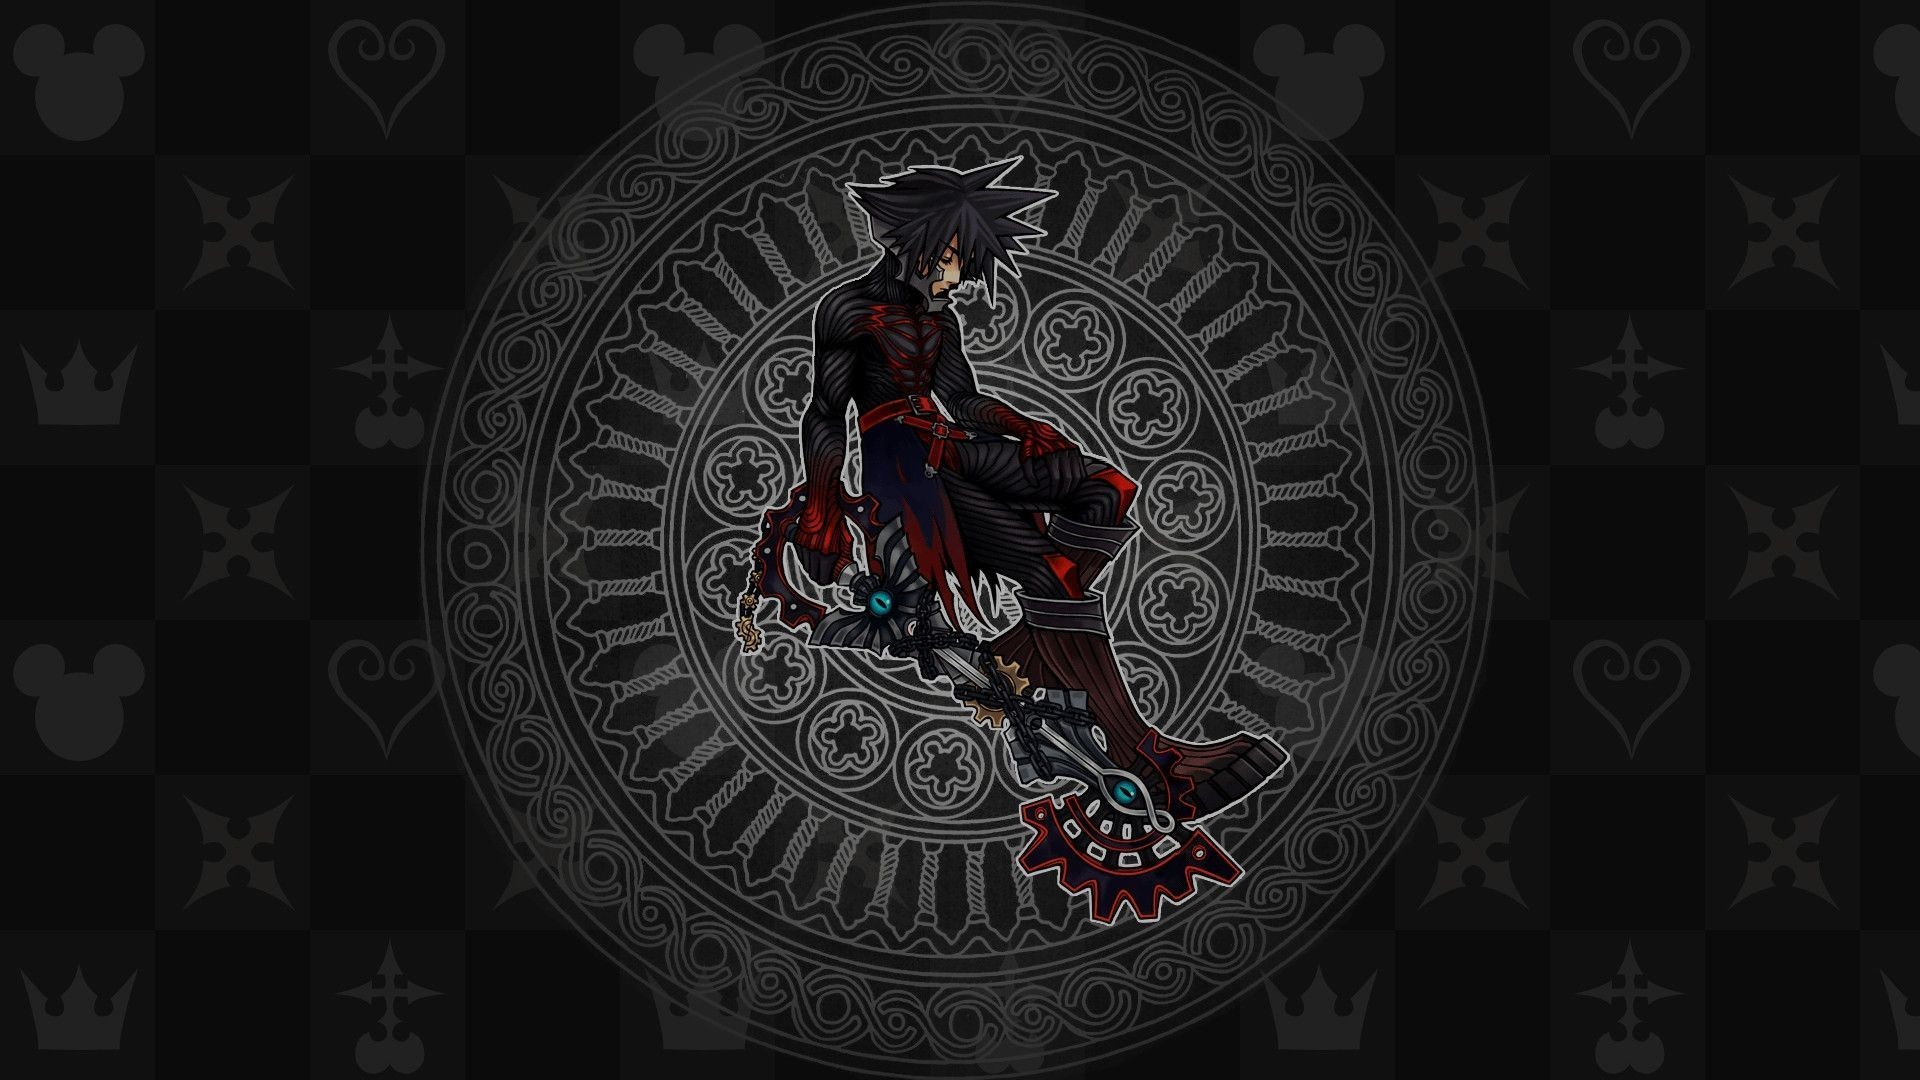 1920x1080 ... kingdom hearts wallpaper 1080p image gallery hcpr ...